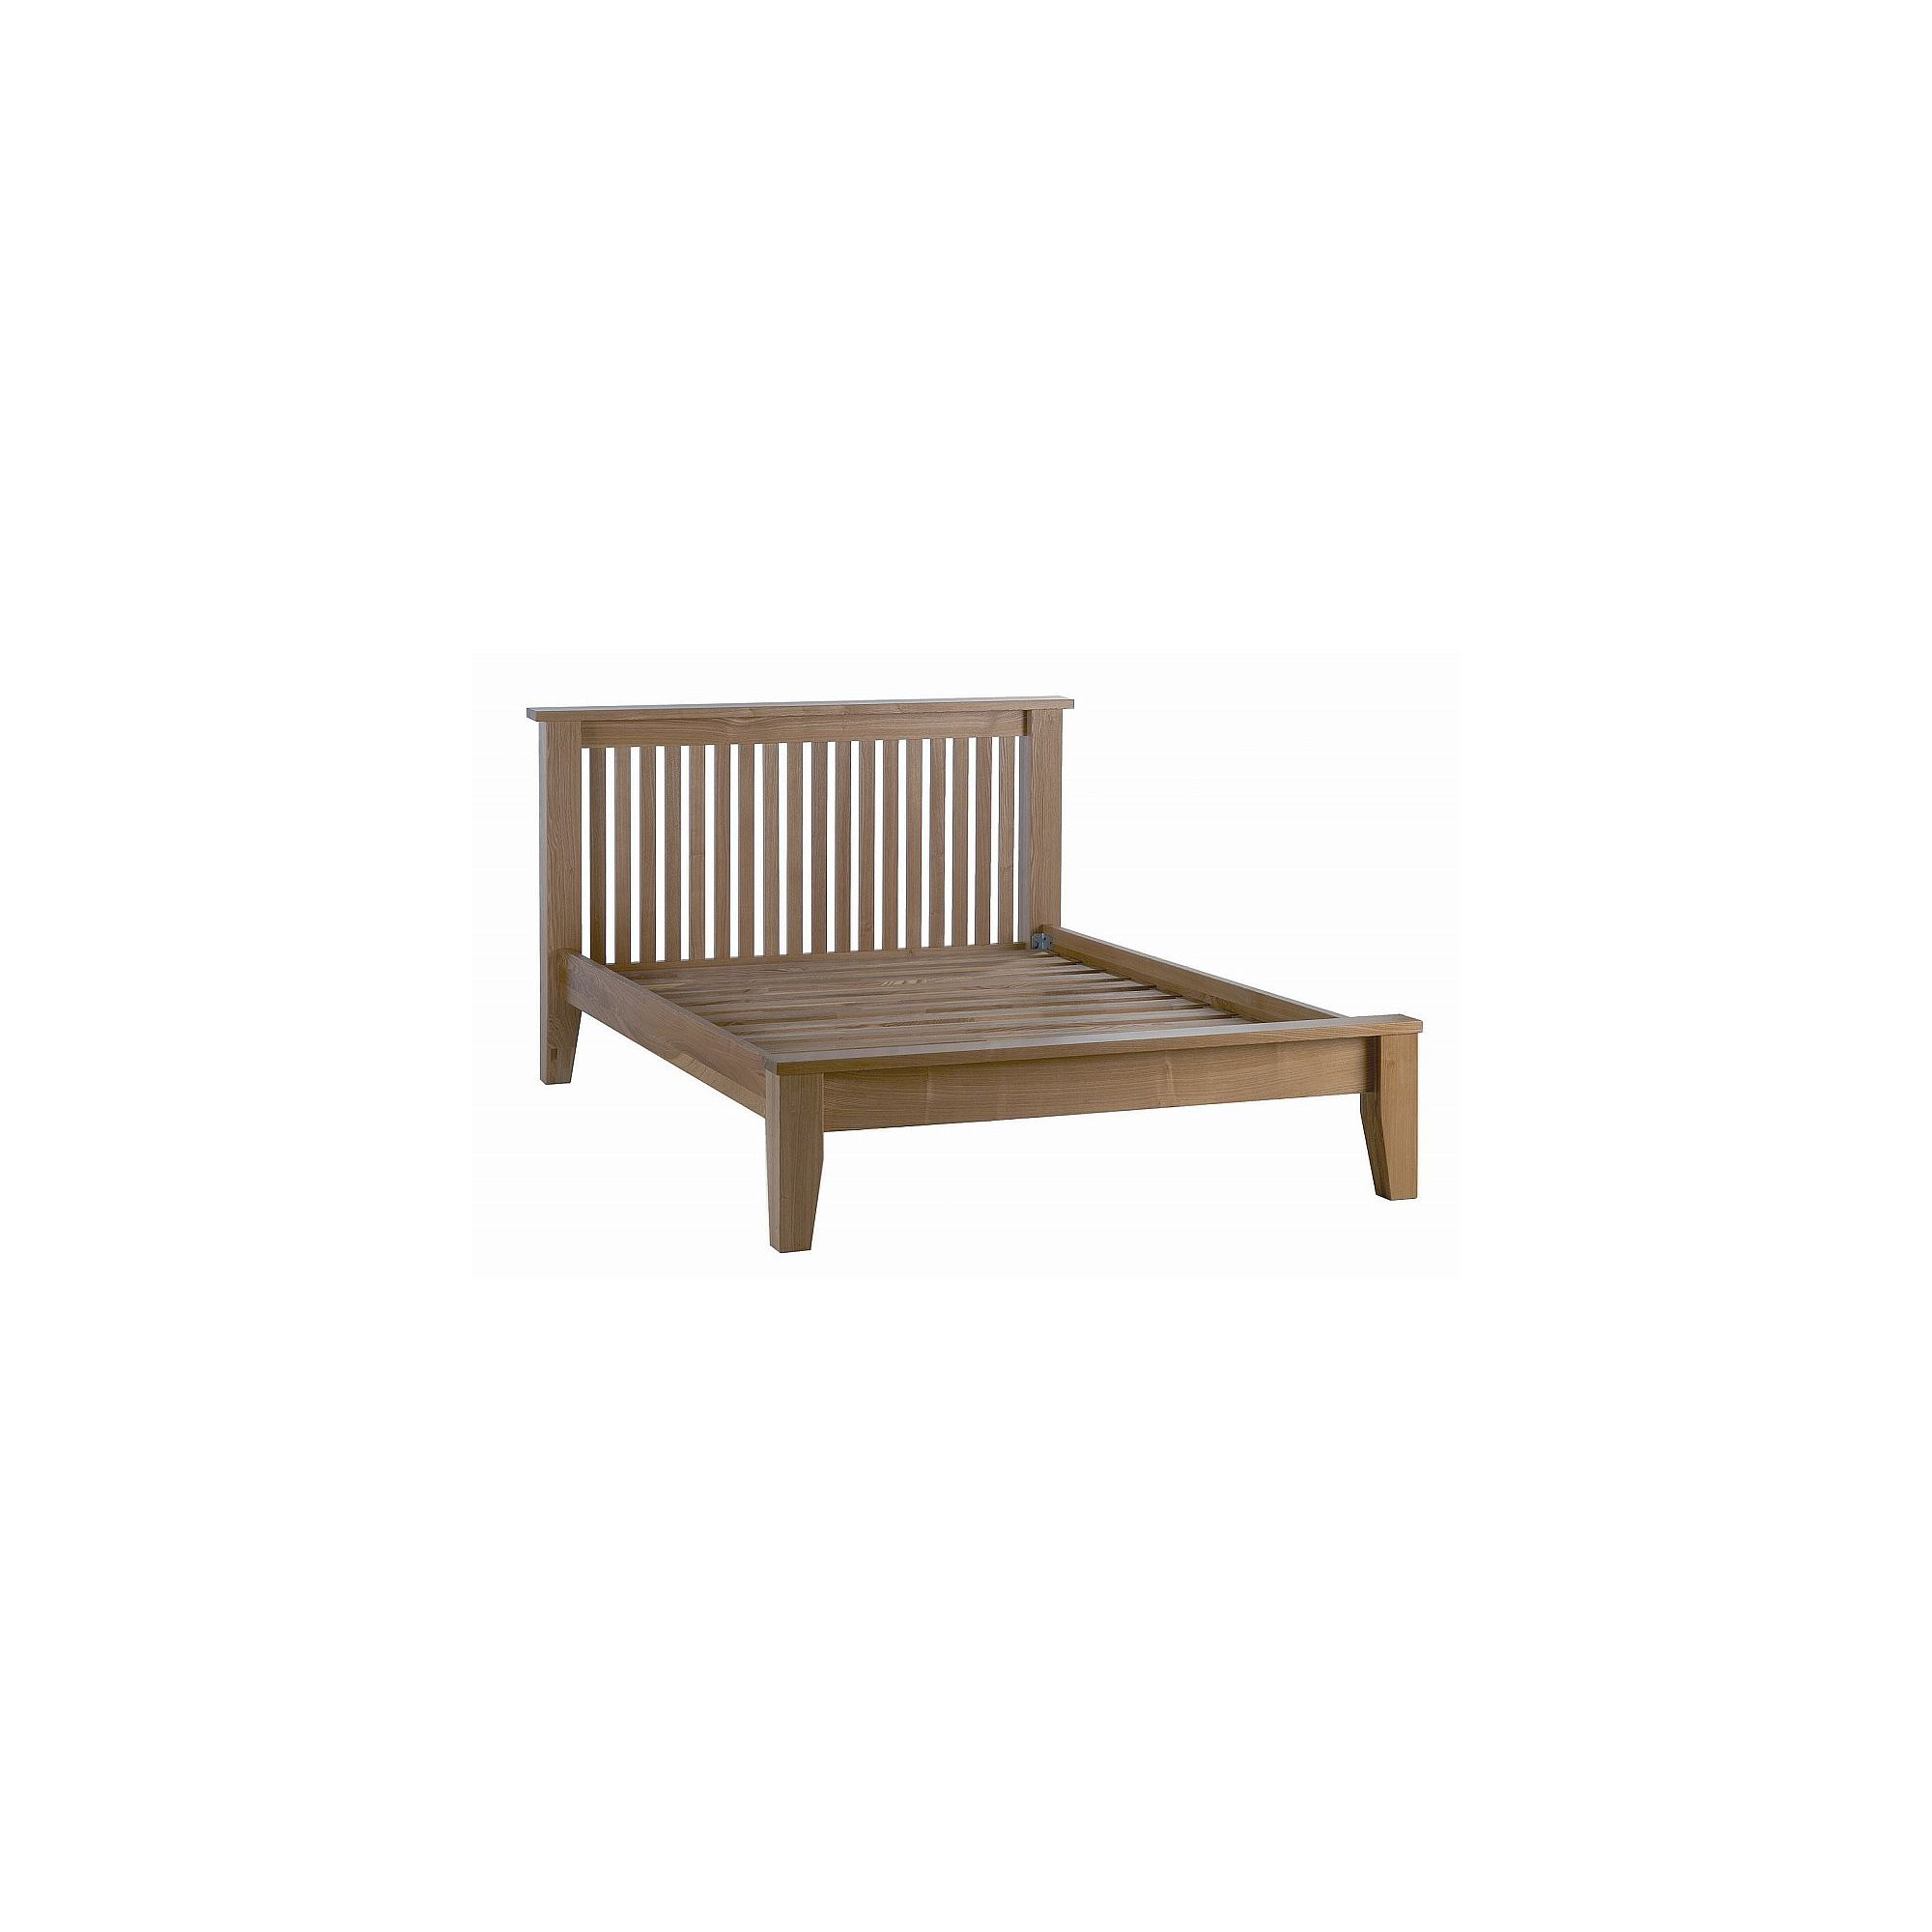 Kelburn Furniture Carlton Low Foot End Bed Frame - King at Tescos Direct